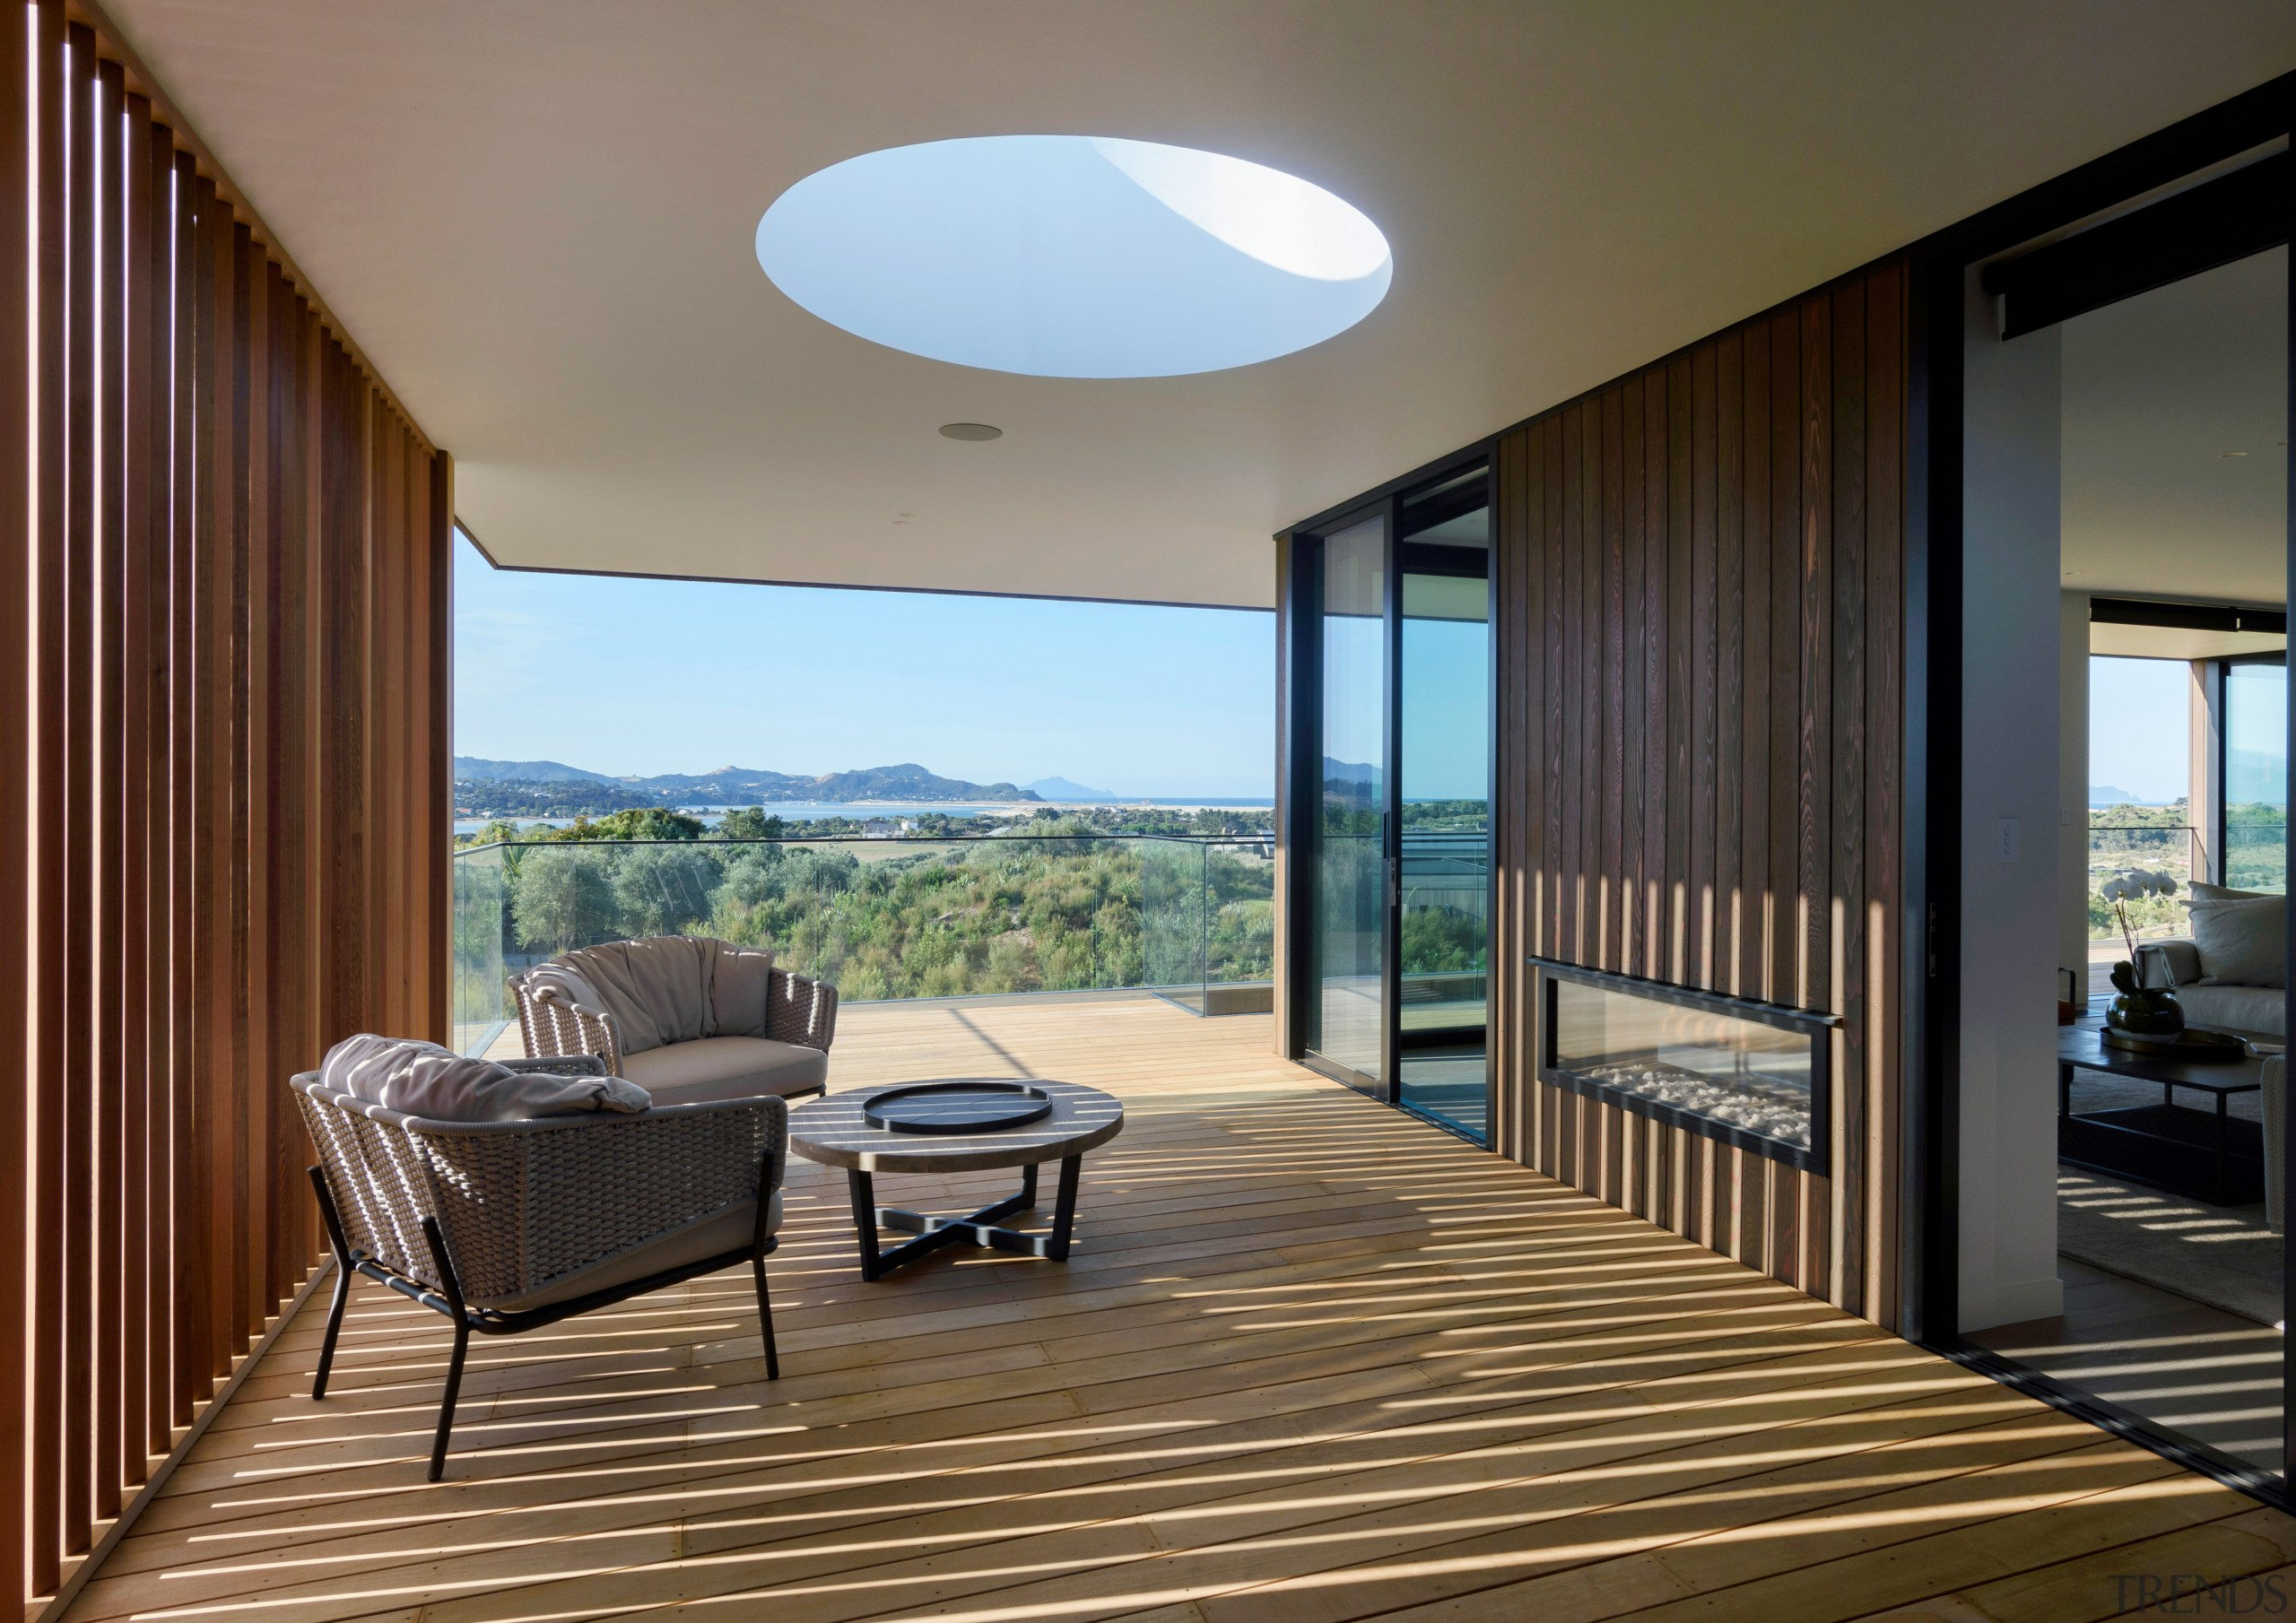 The home's design meant the central aperture of